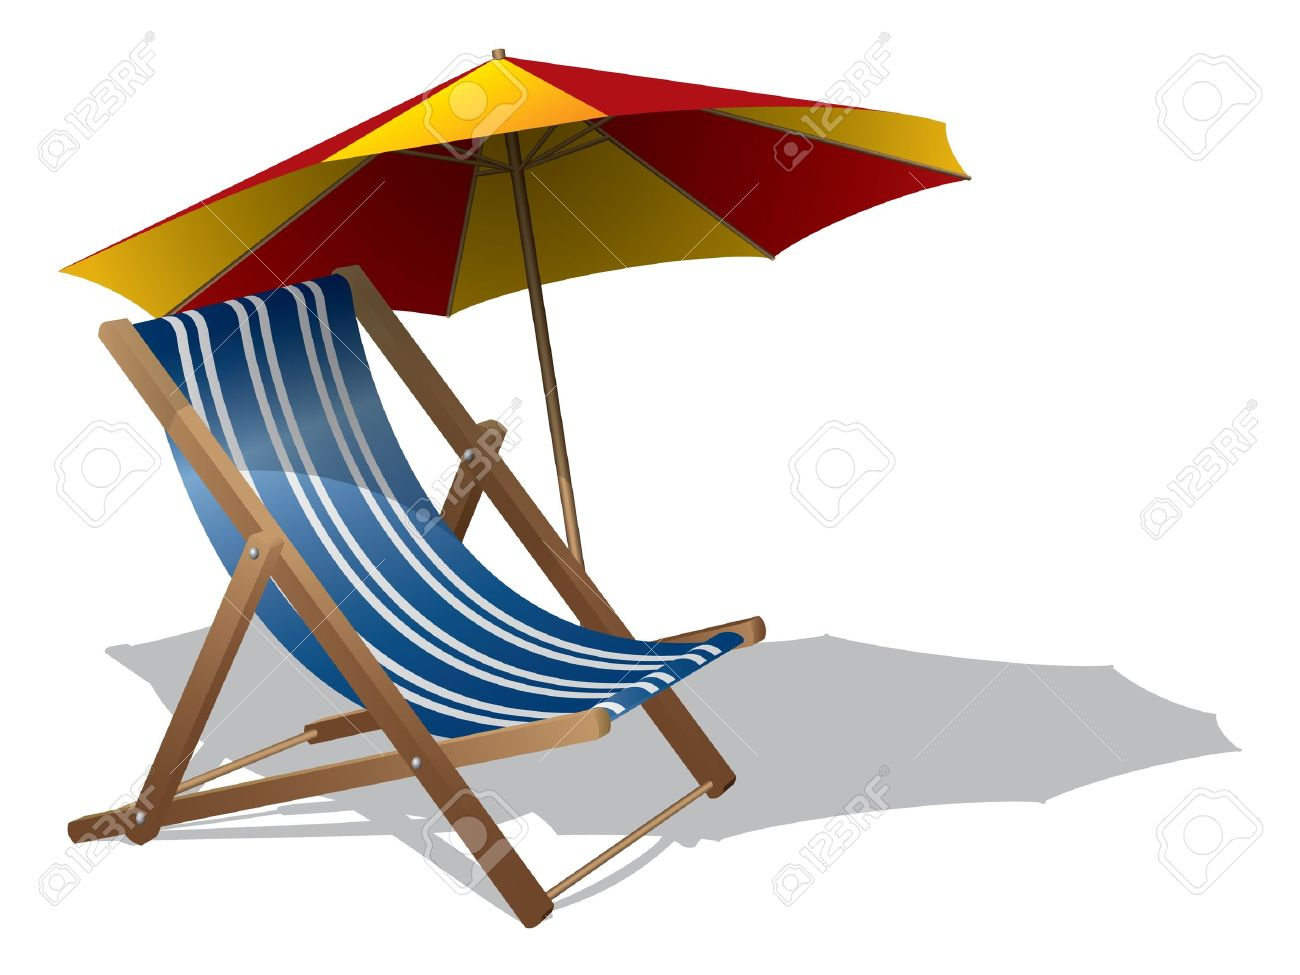 1300x975 Breathtaking Beach Chair With Umbrella Beach Chairs Umbrella